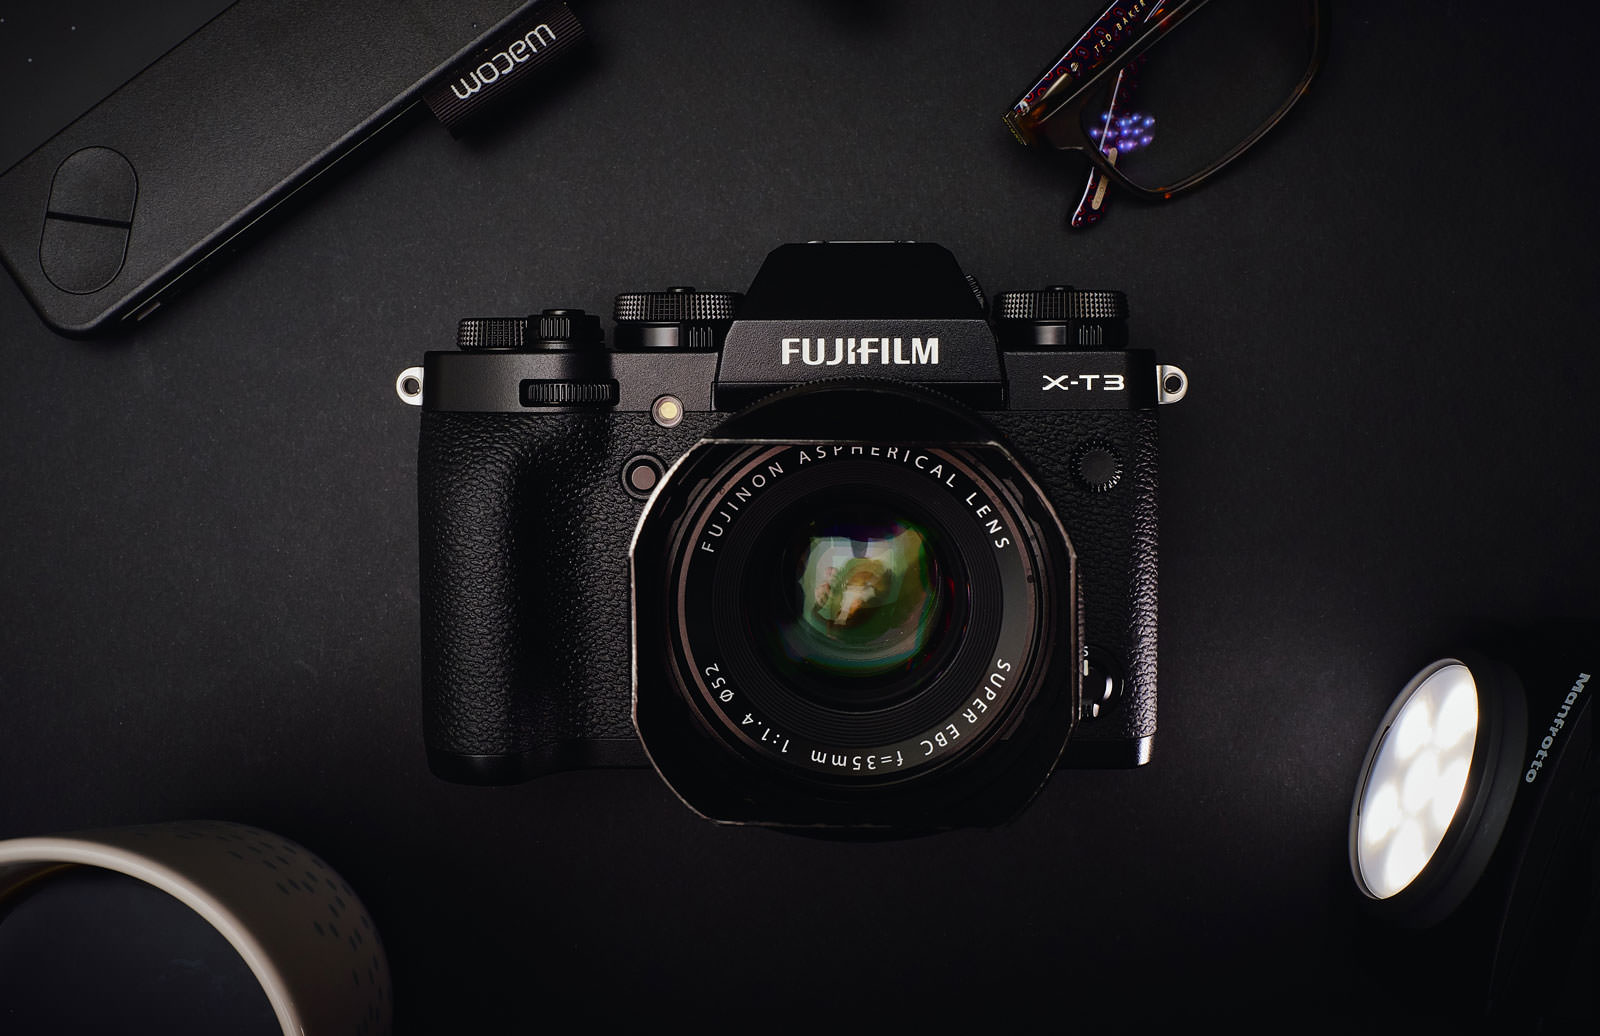 Fujifilm X-T3 – One Week Of WOW